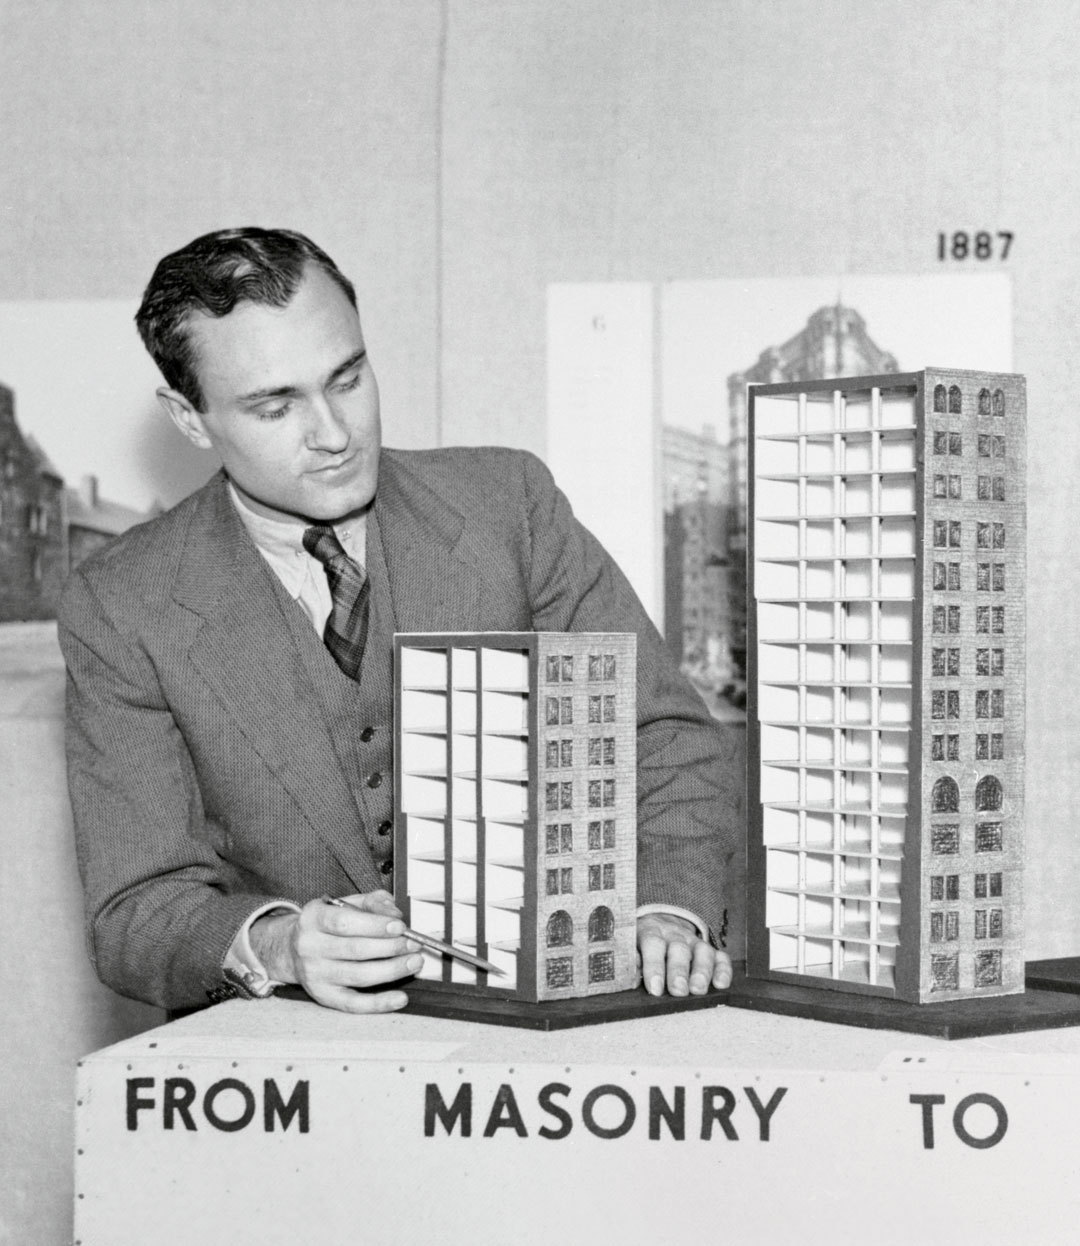 Philip Johnson with models demonstrating the evolution of the skyscraper from masonry to steel [detail]. Bettmann via Getty Images